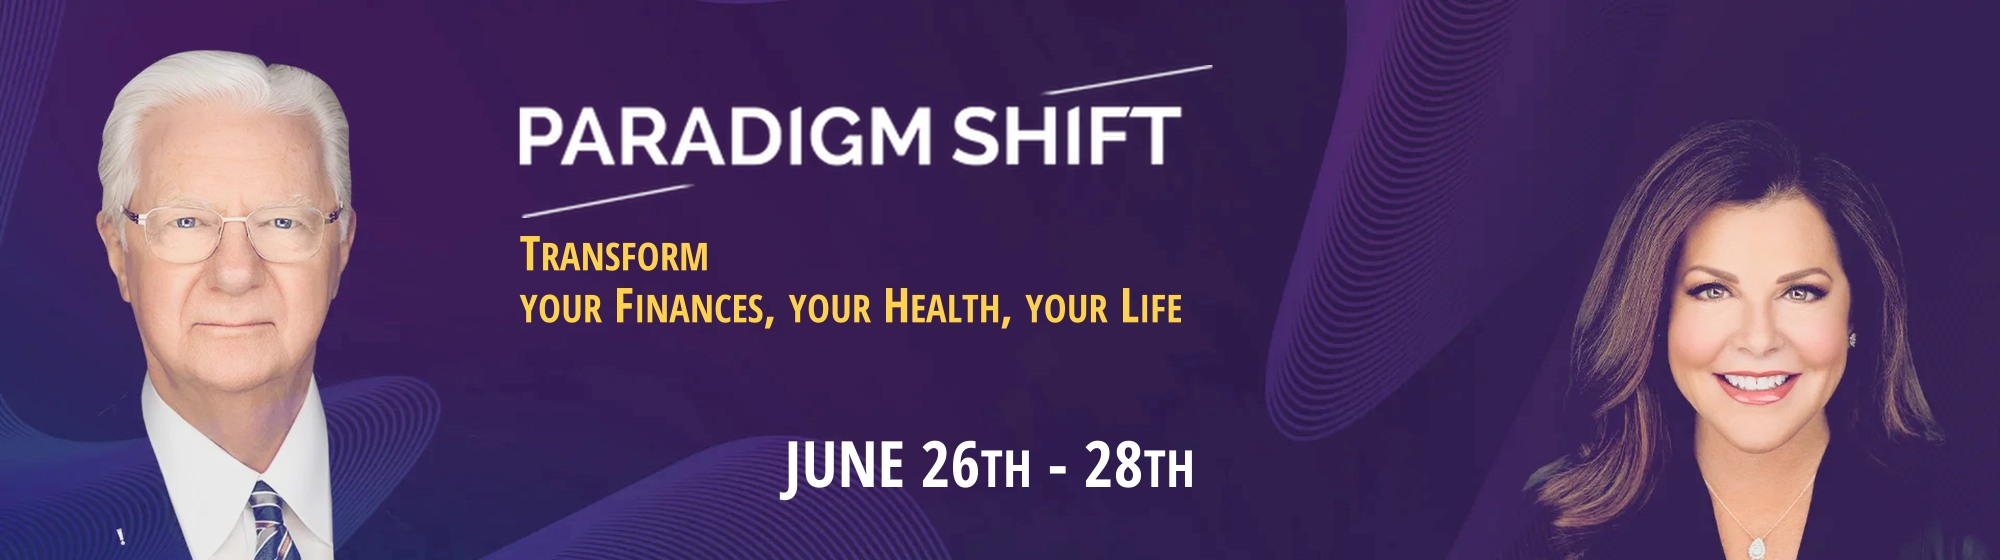 proctor gallagher paradigm shift virtual seminar - transform your health finances lifestyle June 26 - 28